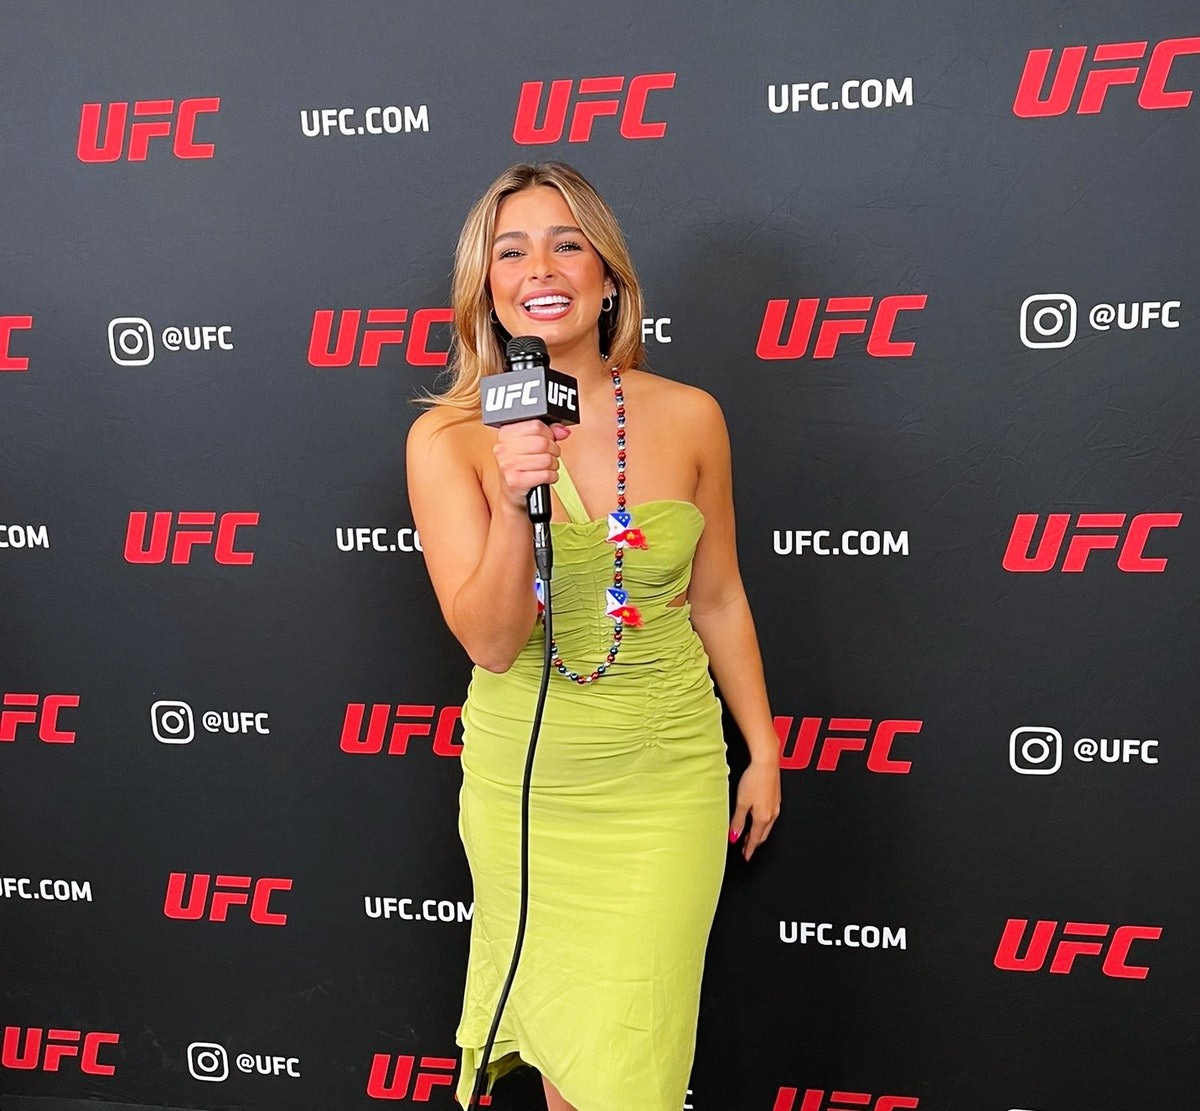 Addison Rae standing on a red carpet with UFC backdrop holding a mic.